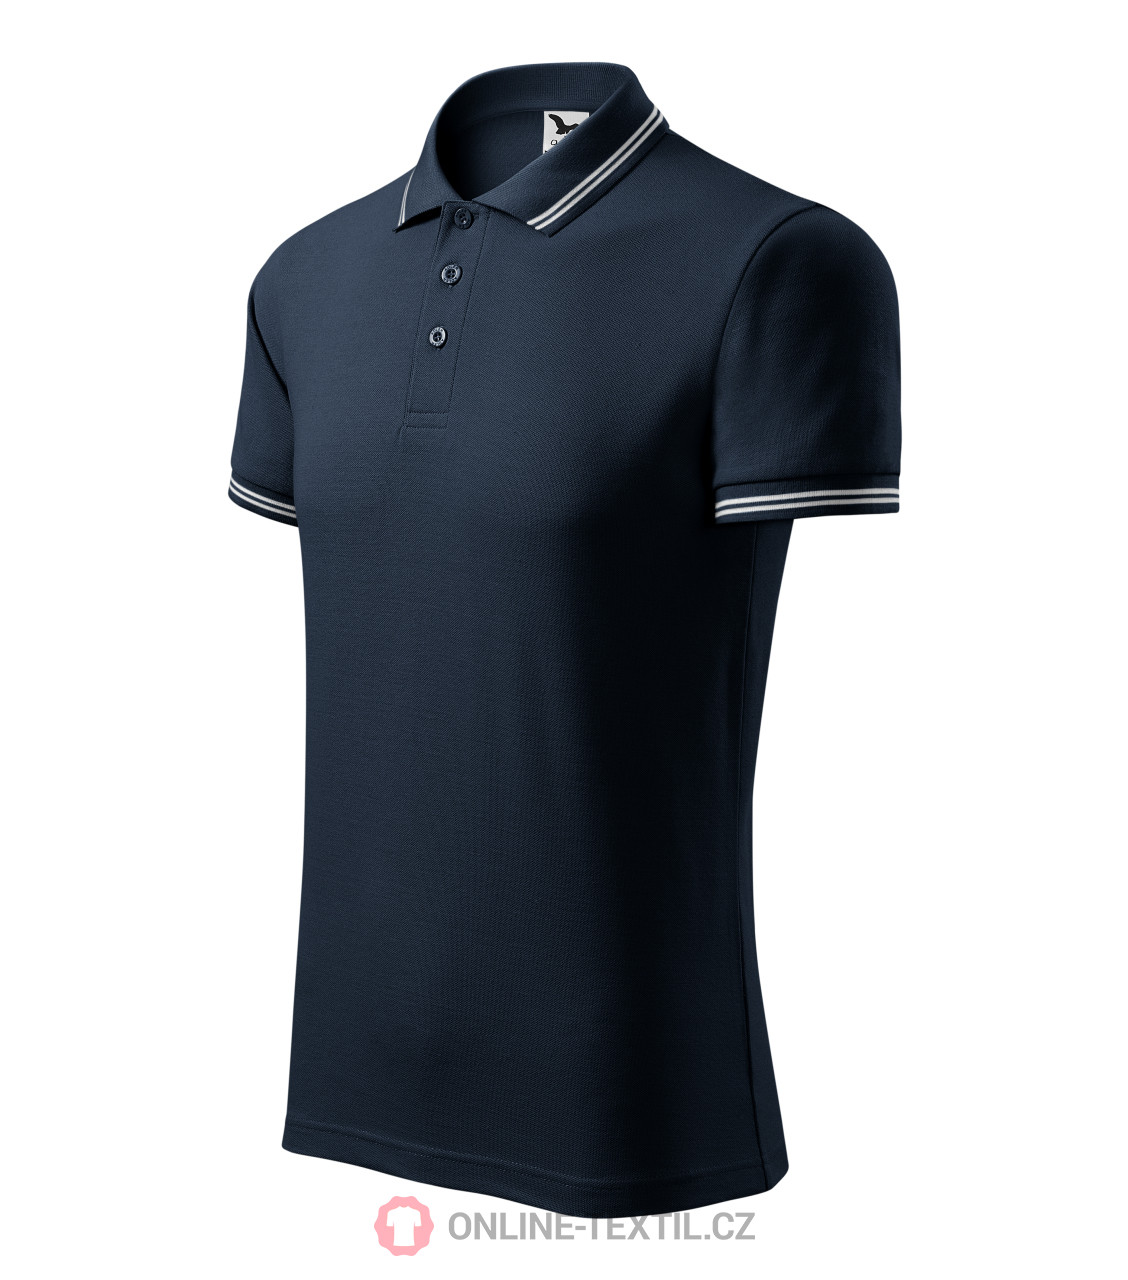 Adler gents polo shirt urban 219 navy blue online for Navy blue shirt online